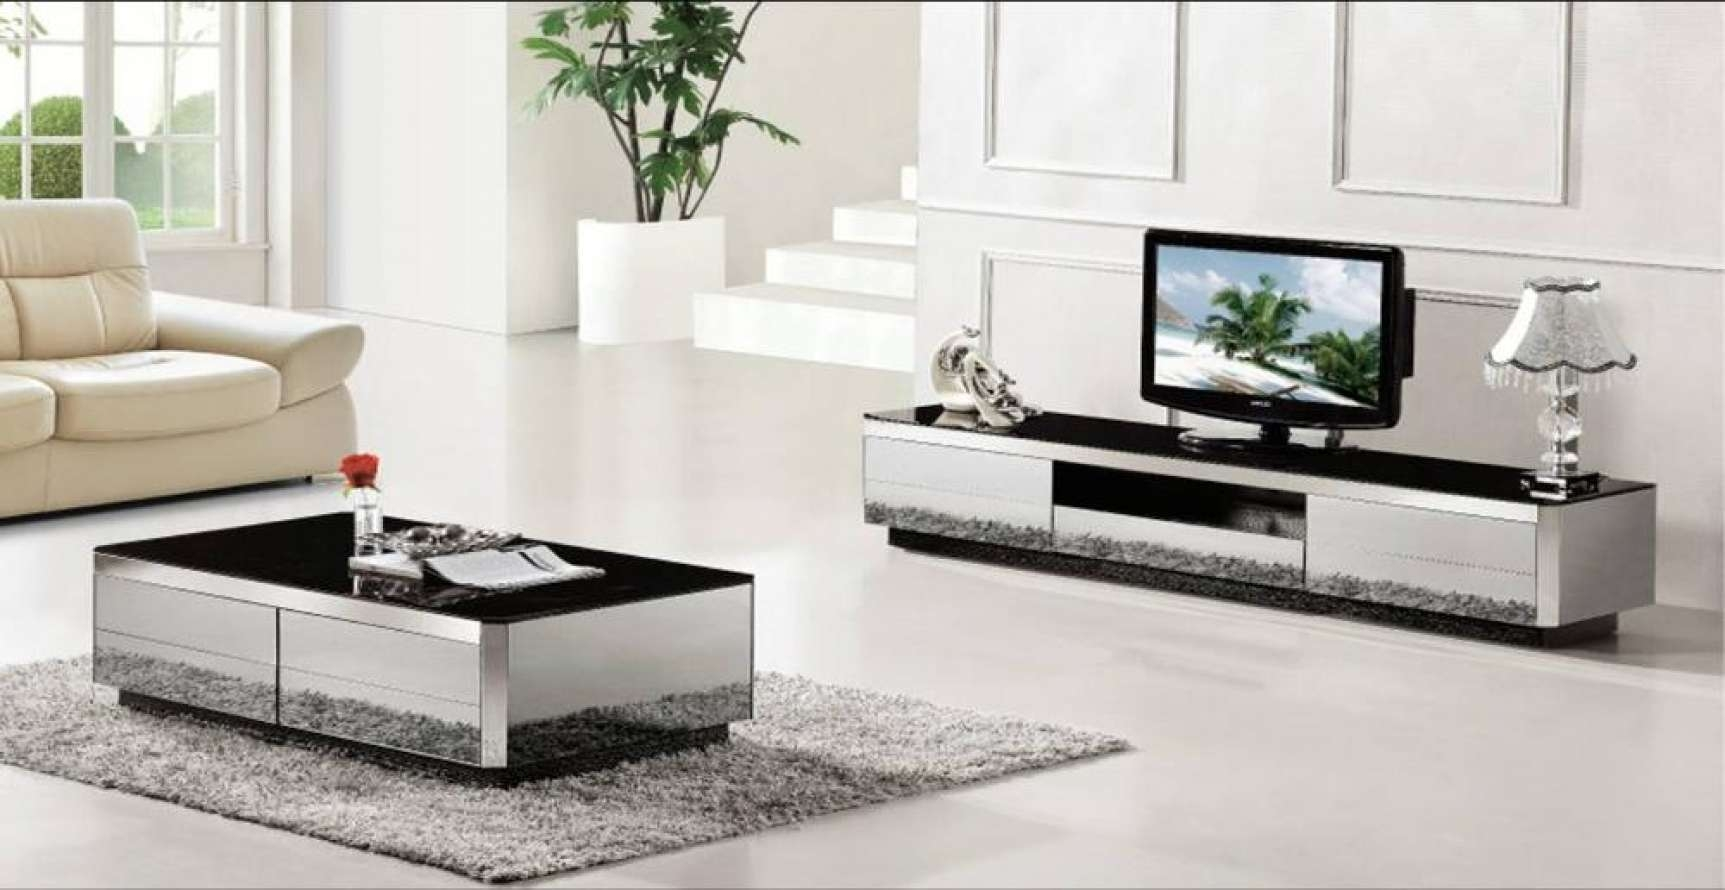 Tv Stand And Coffee Table Sets Tags : 96 Remarkable Tv Stand And Regarding Coffee Tables And Tv Stands Matching (View 15 of 15)